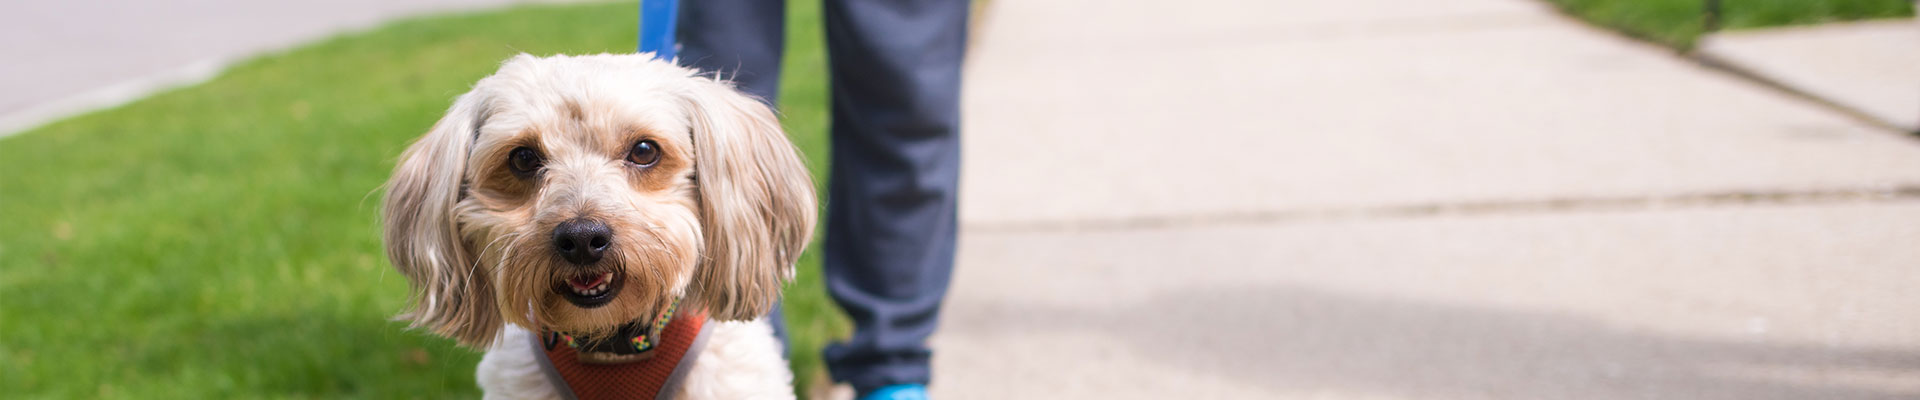 Dog Services Near Me Rates - The Strutting Pooch